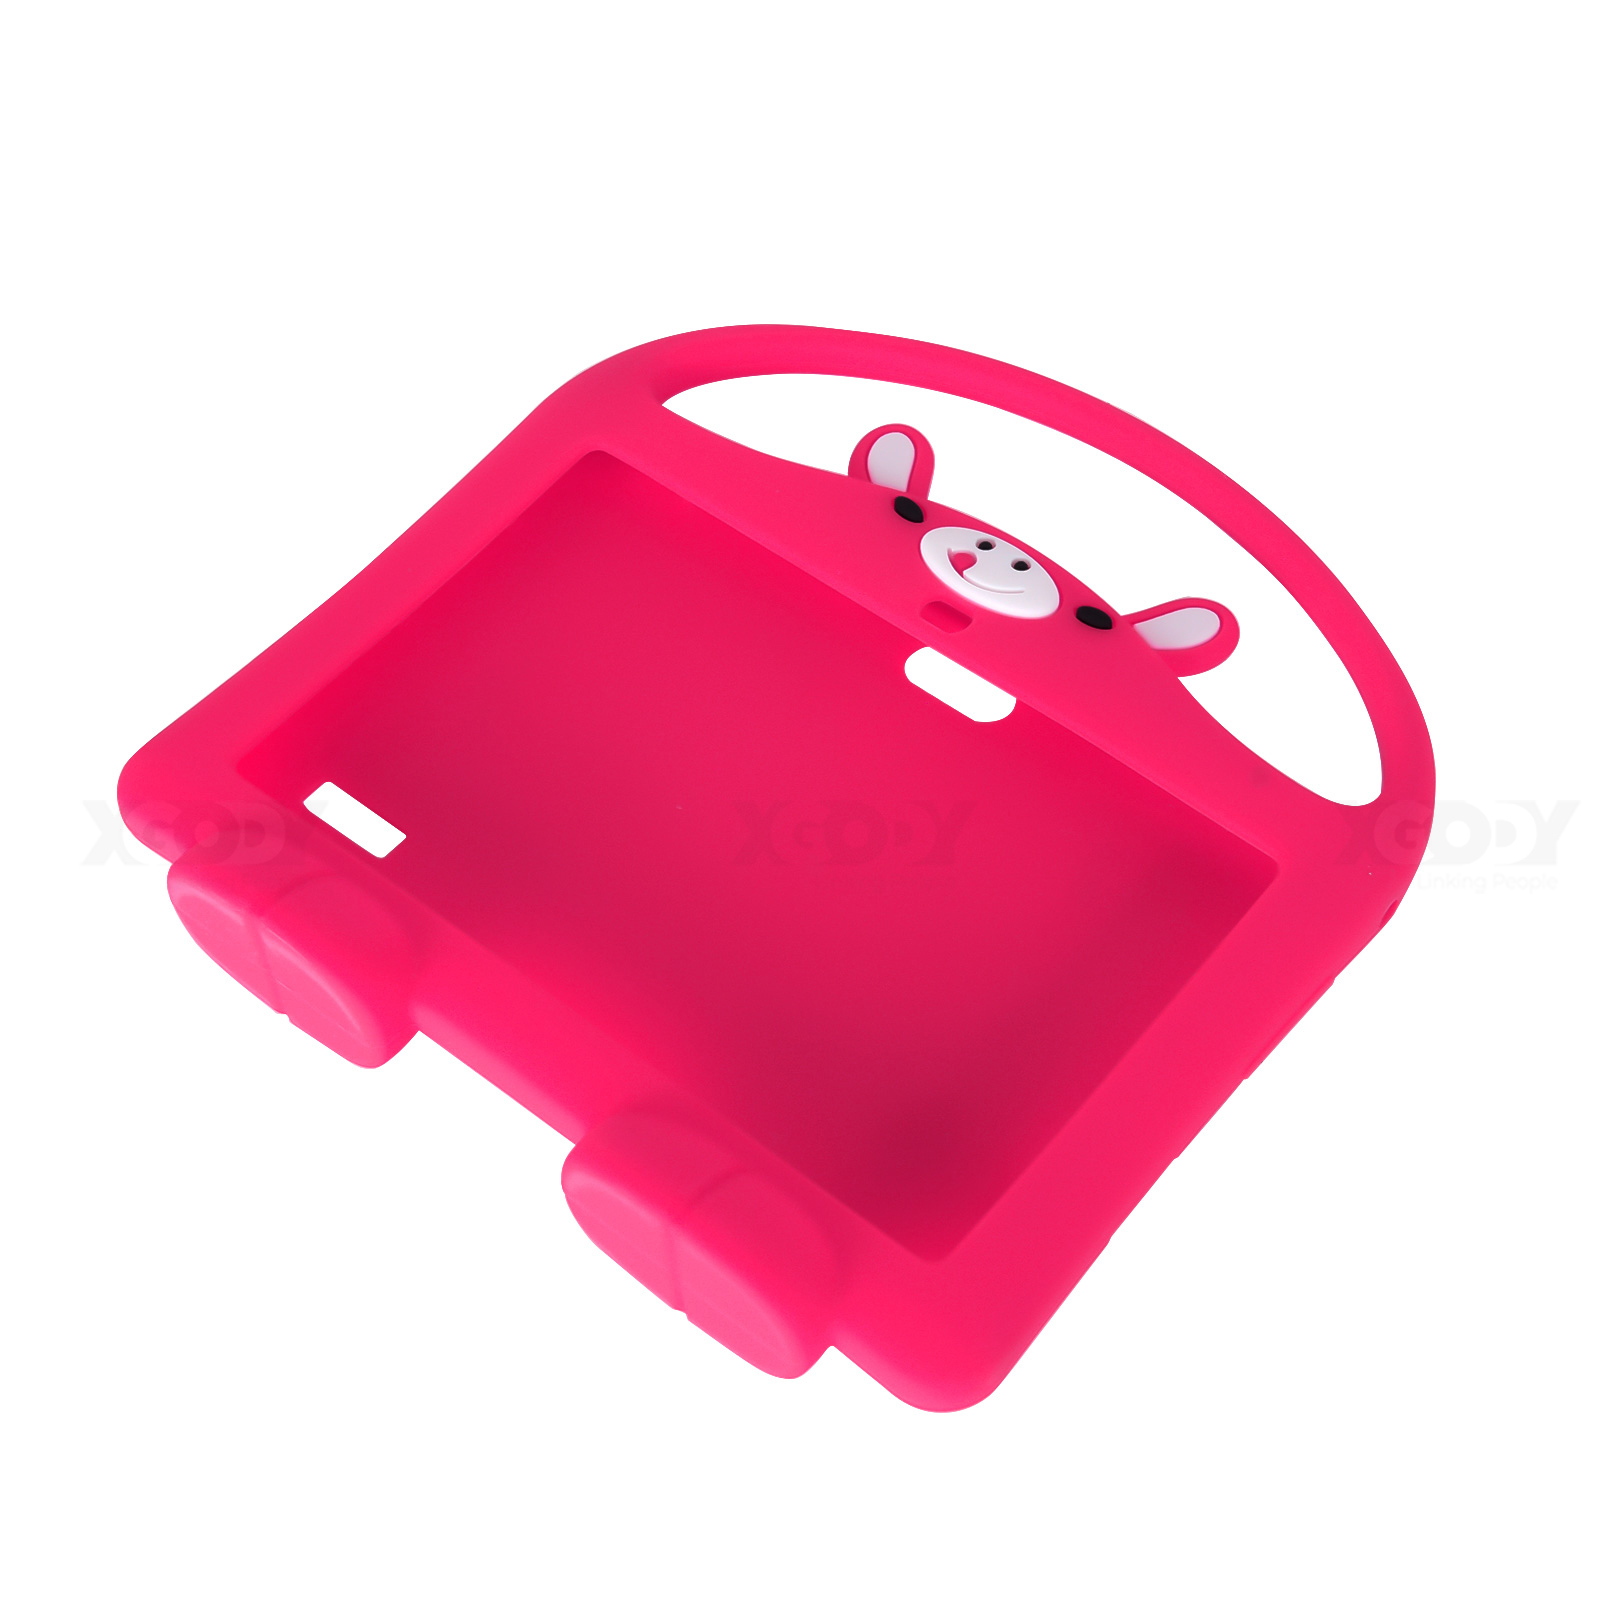 miniature 14 - Silicone Case Cover For 7 inch Android Tablet Waterproof Shockproof high quality